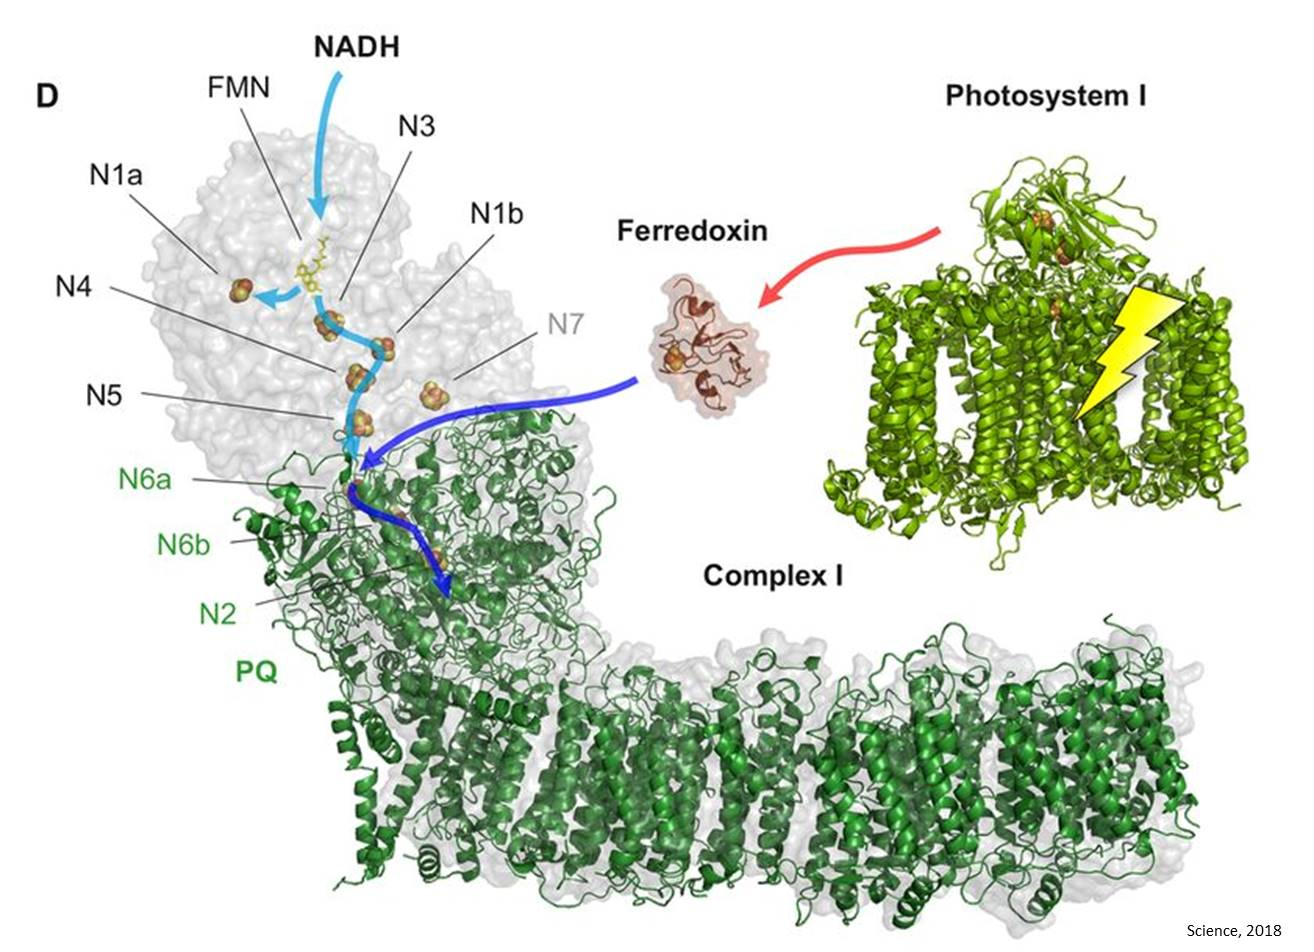 Structure and function of photosynthesis protein explained in detail